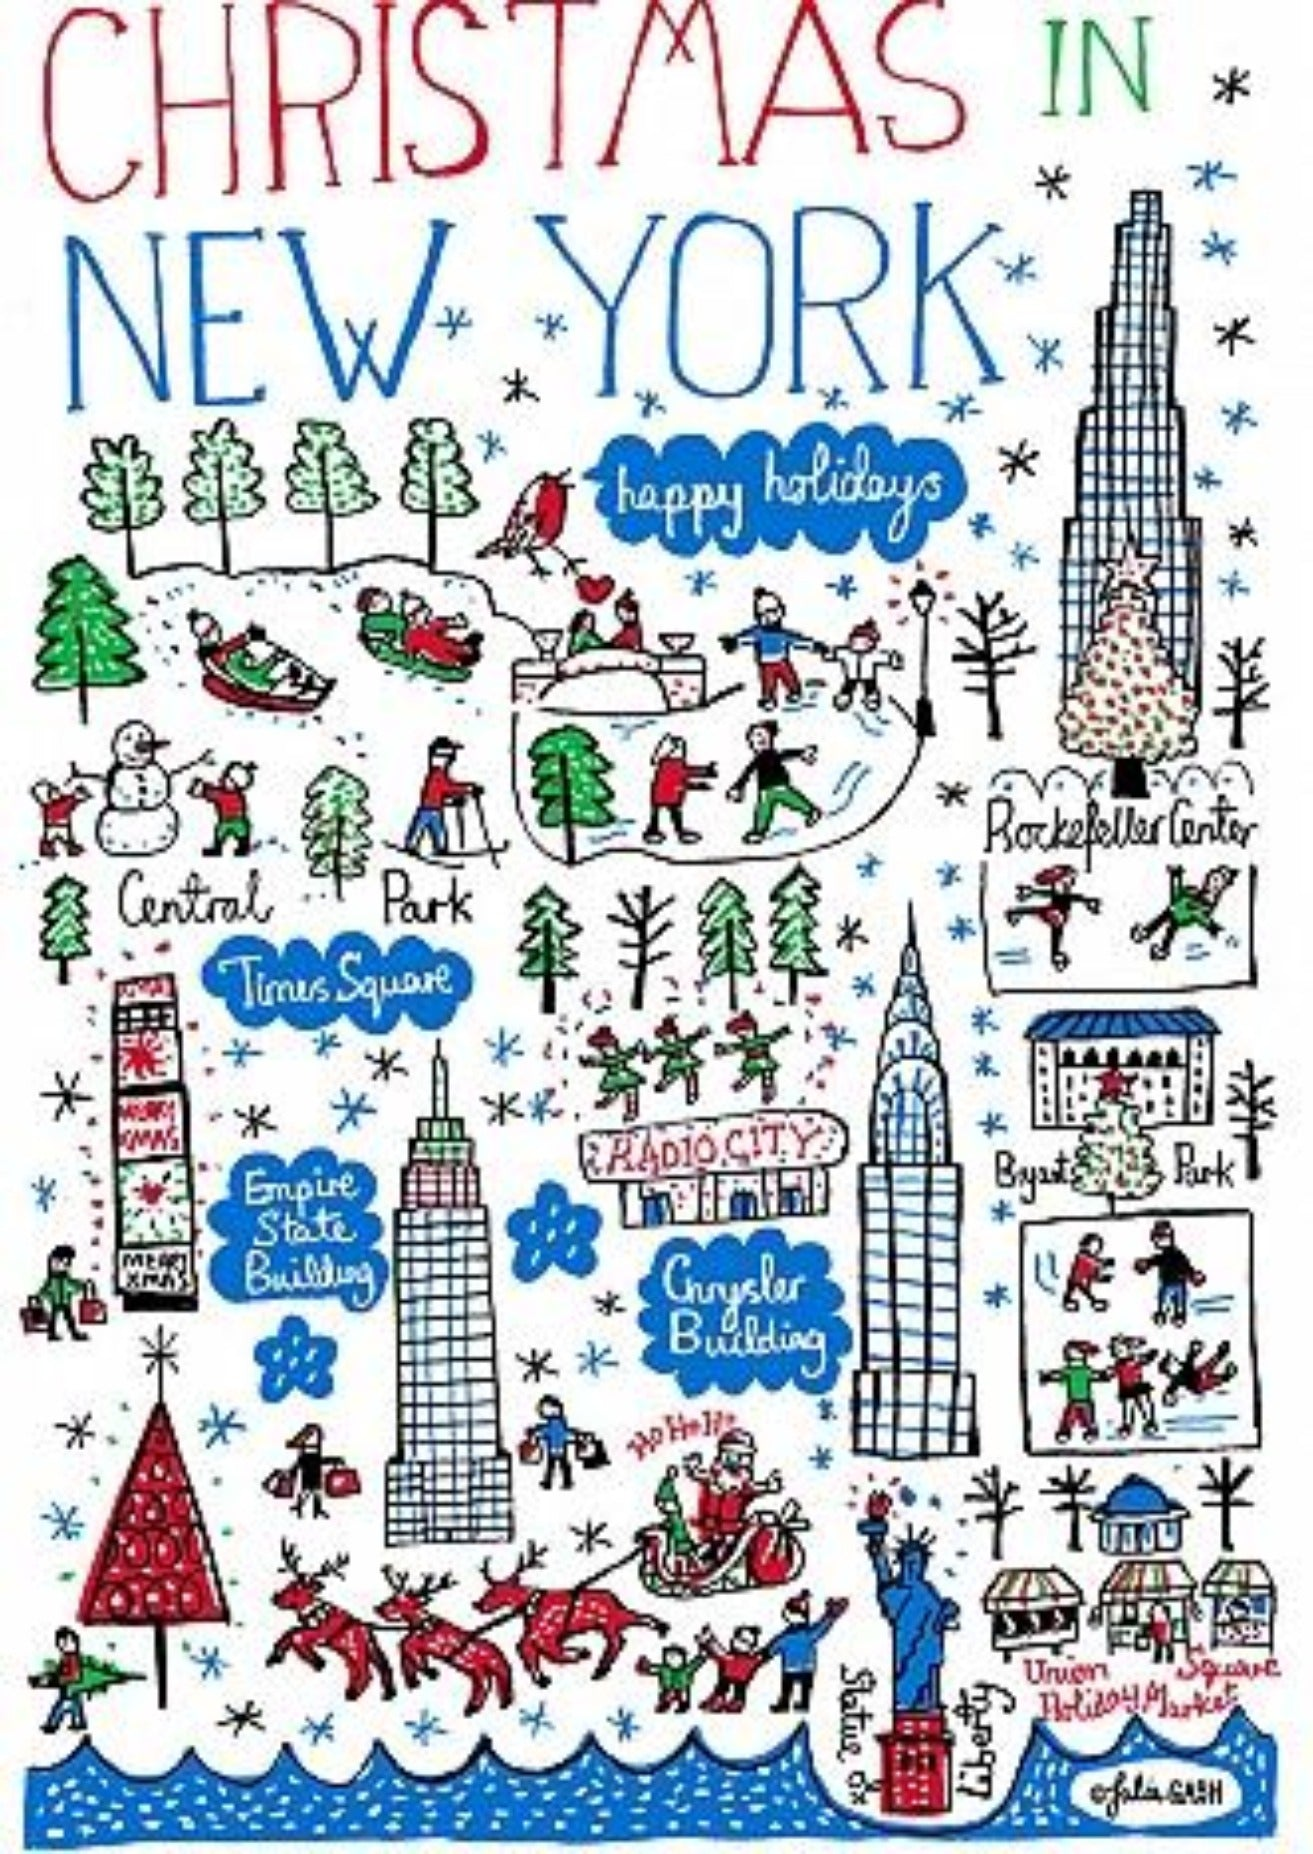 Christmas in New York Artwork